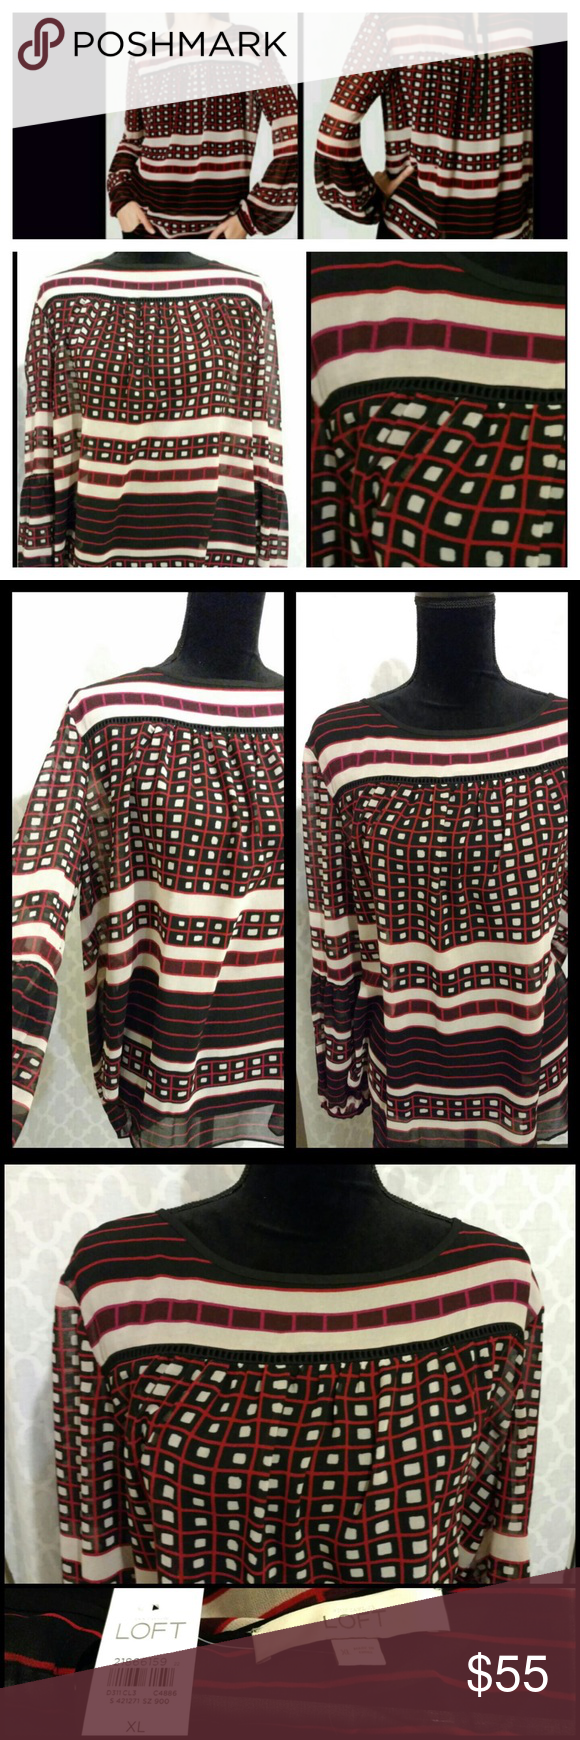 Loft Blouse - Geometric Print New with tags. Loft brand blouse. Red, black, cream (off white) color mix with a geometric print. Stylish and fun! Light and flowy material. Brand new, excellent condition. Discount available with bundle purchase or please make an offer. LOFT Tops Blouses